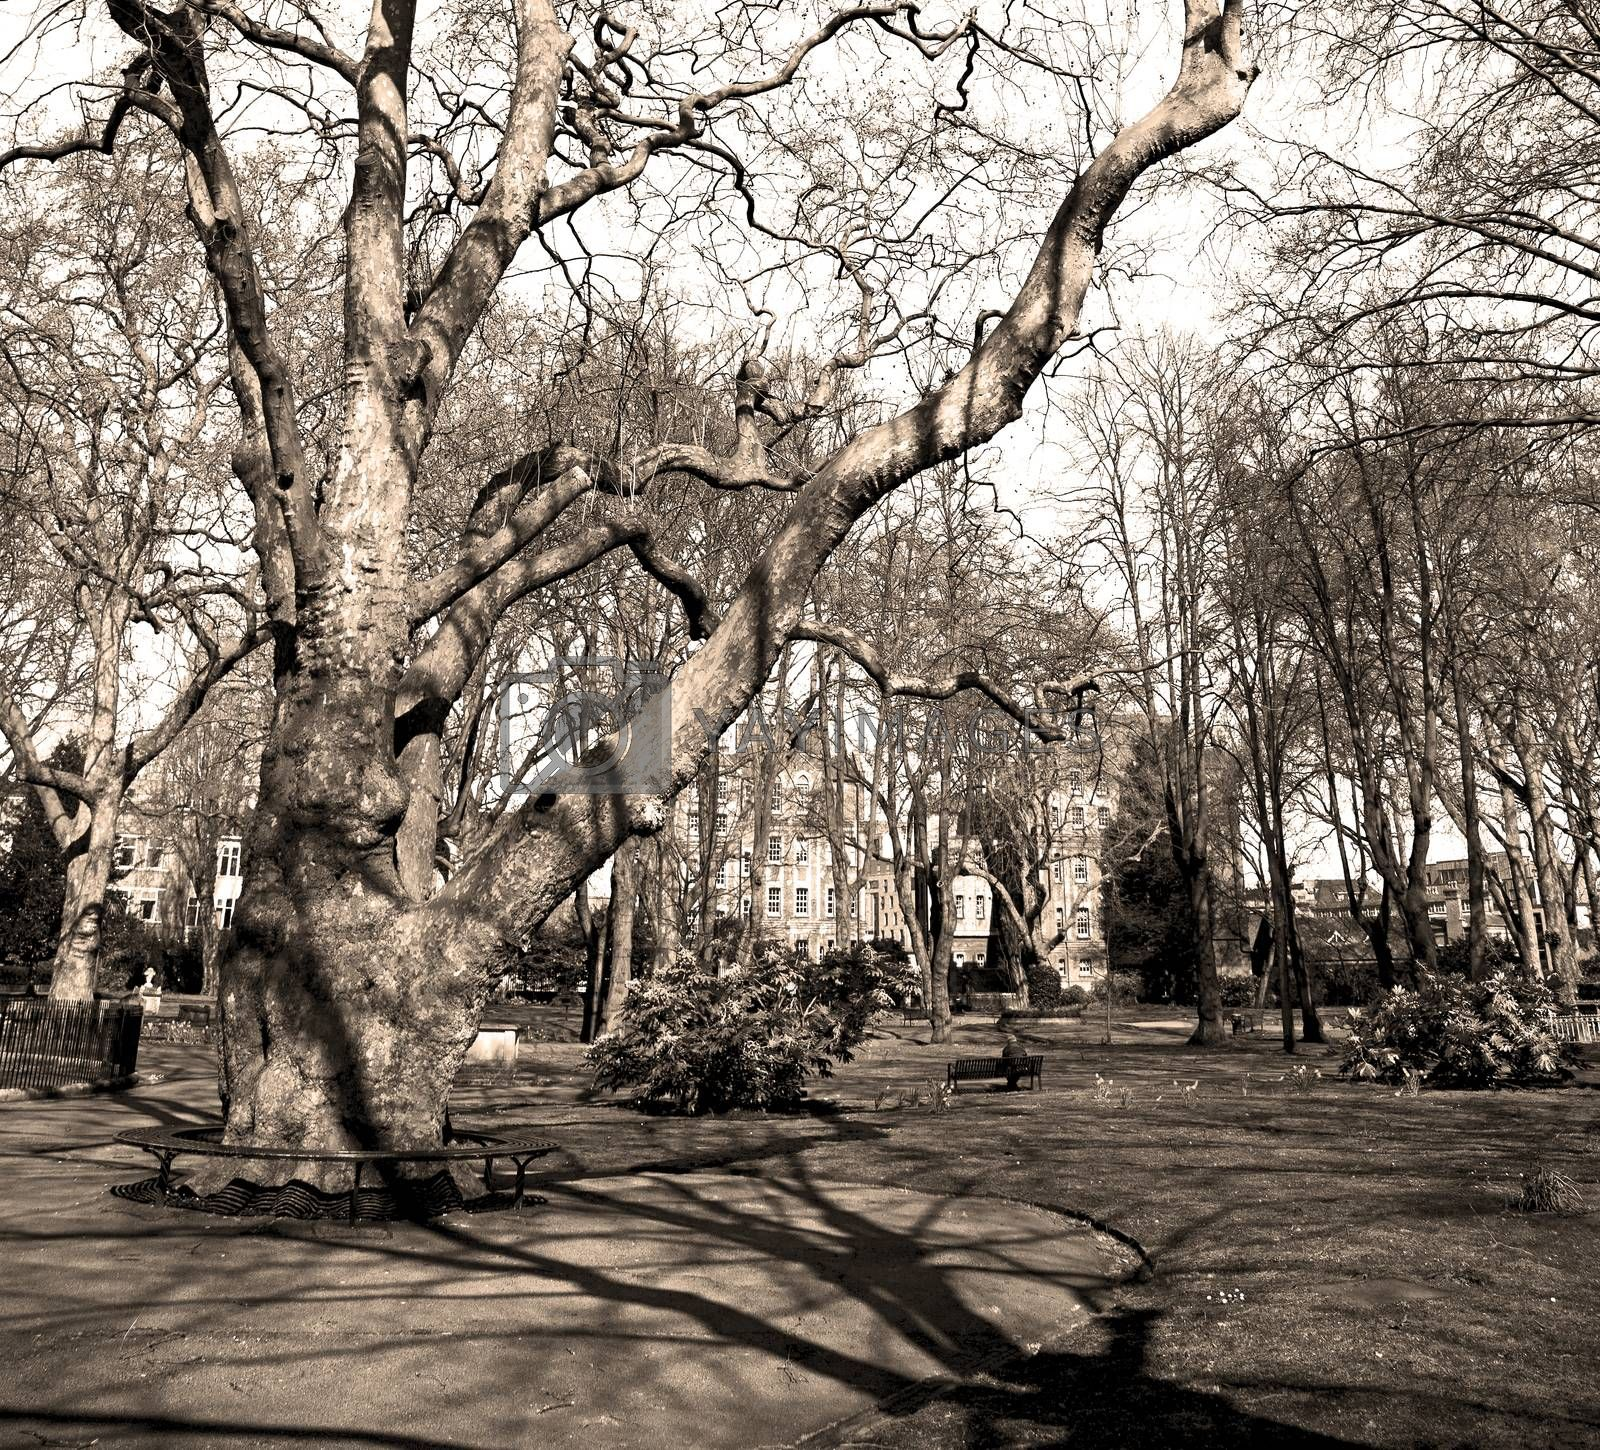 park in london spring sky and old dead tree  by lkpro